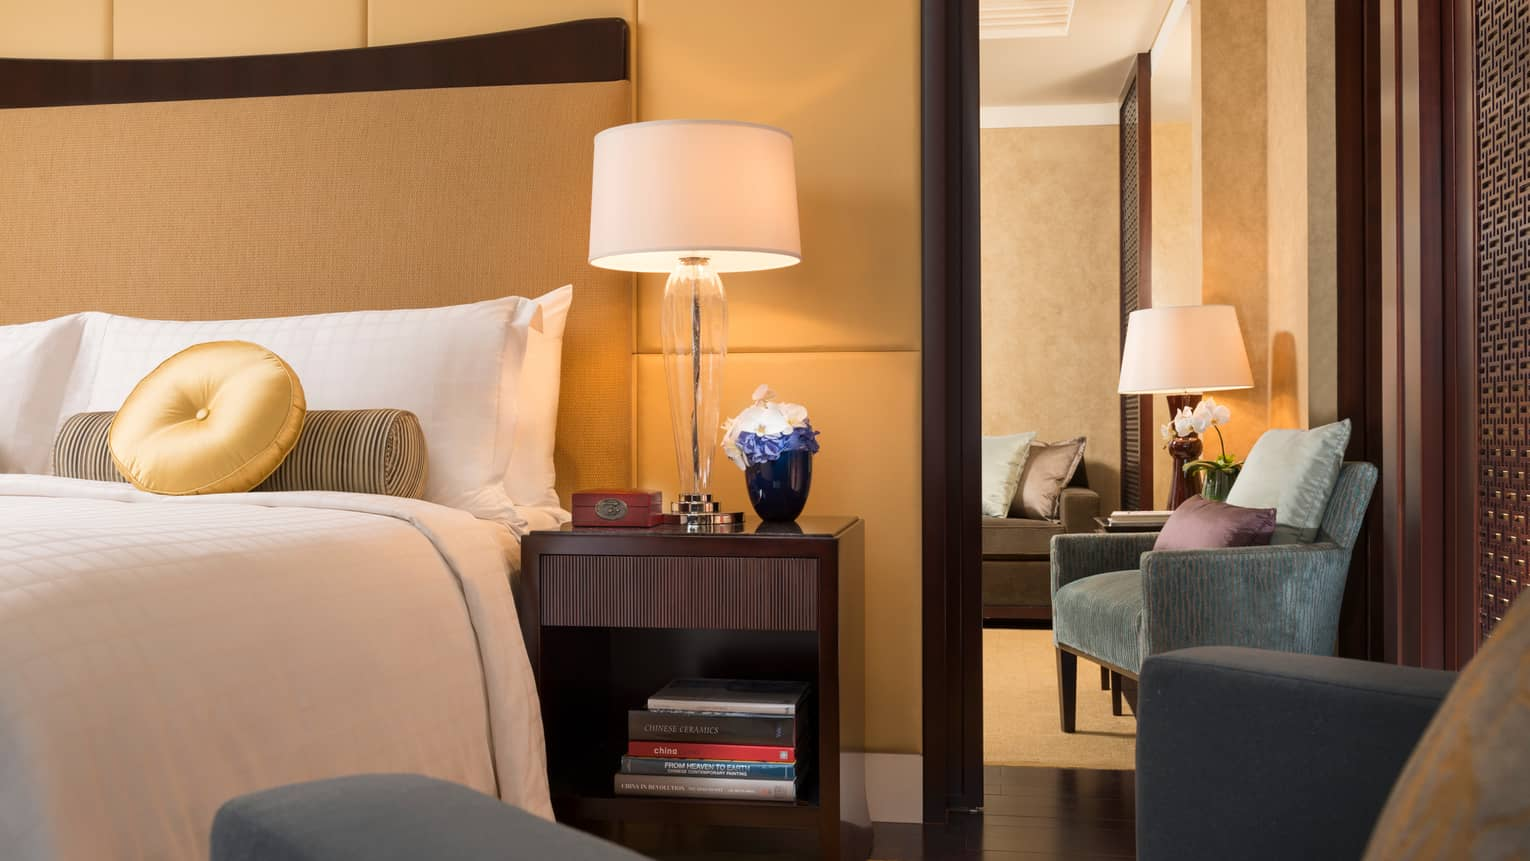 Ambassador Suite corner of bed with round gold pillow, armchair, nightstand with lamp, flowers